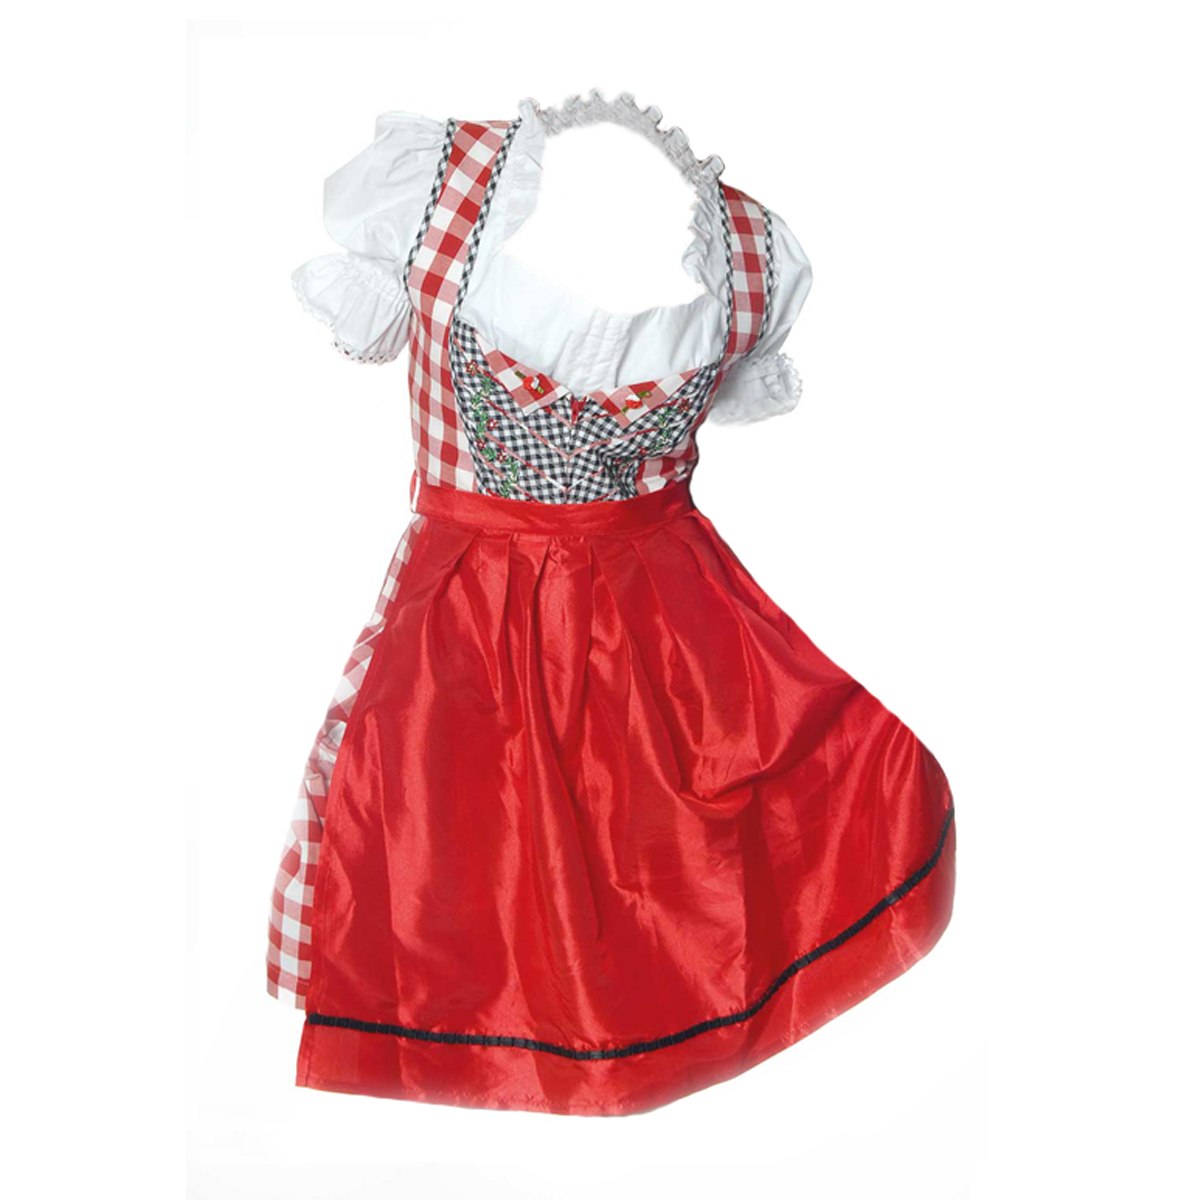 RED / WHITE LONG DIRNDL WITH NET BLOUSE